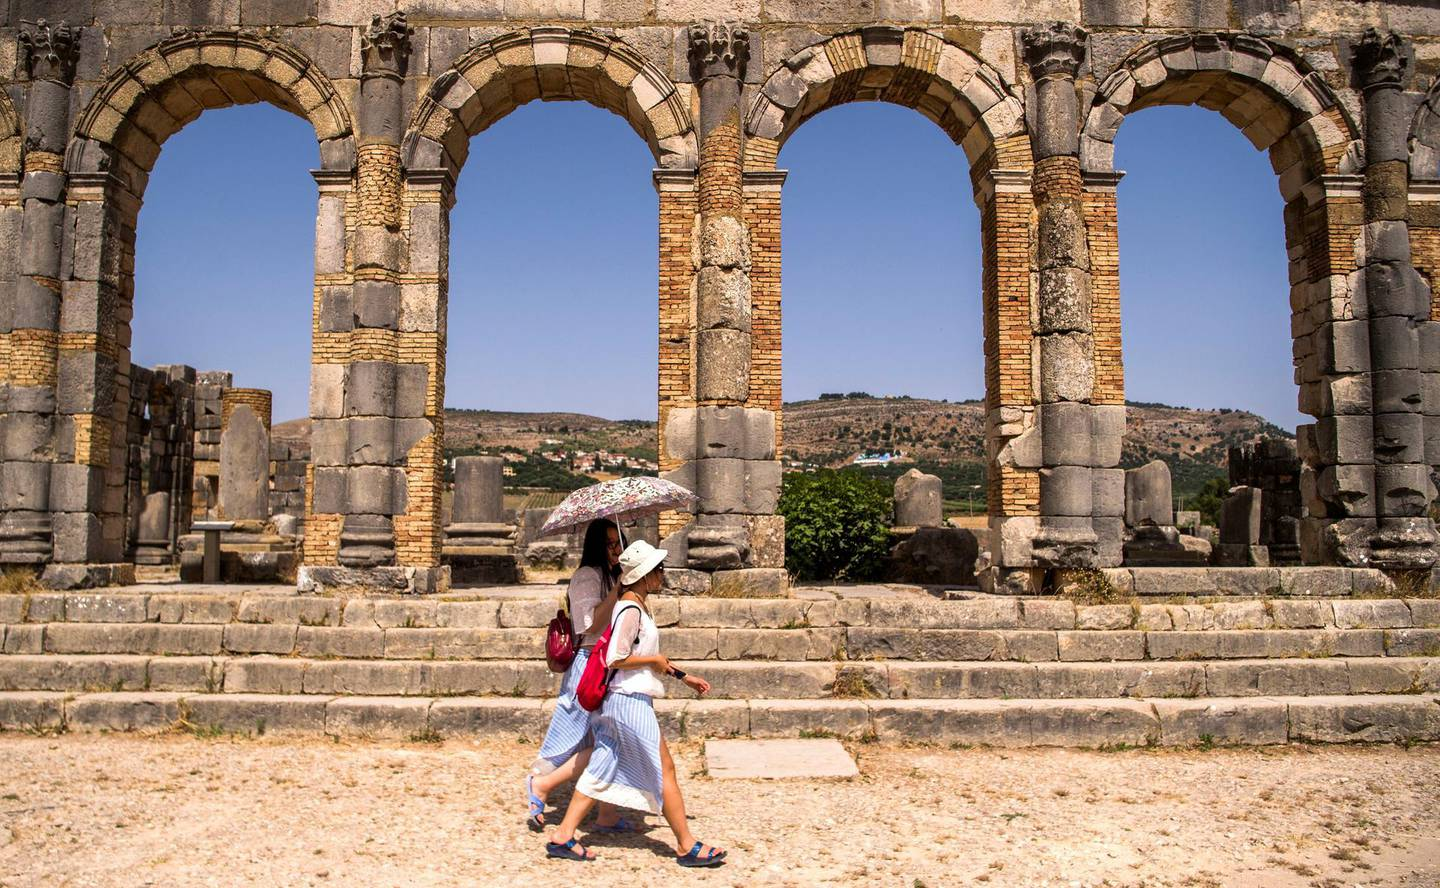 Tourists walk through the ruins of the ancient Roman site of Volubilis, near the town of Moulay Idriss Zerhounon in Morocco's north central Meknes region, on July 25, 2018. - Situated in the centre of a fertile plain at the foot of Mount Zerhoun, the towering remains of Morocco's oldest Roman site, Volubilis, were long neglected. But after decades of looting and decay, custodians of the now closely guarded ancient city are turning the page and attracting back tourists. (Photo by FADEL SENNA / AFP)